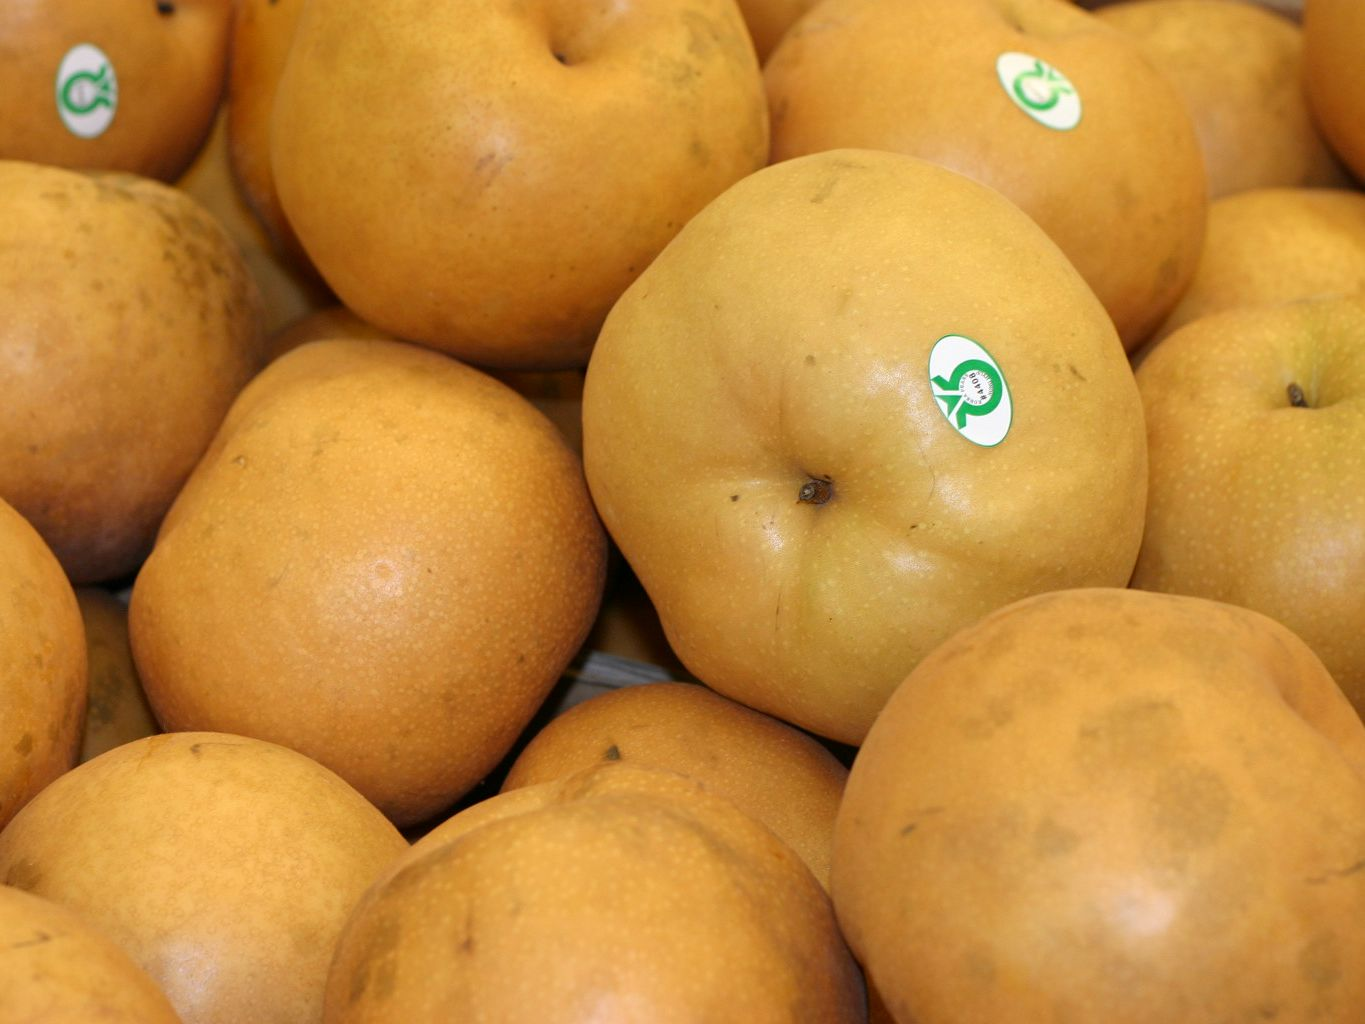 What You Should Know About The Bae Pear